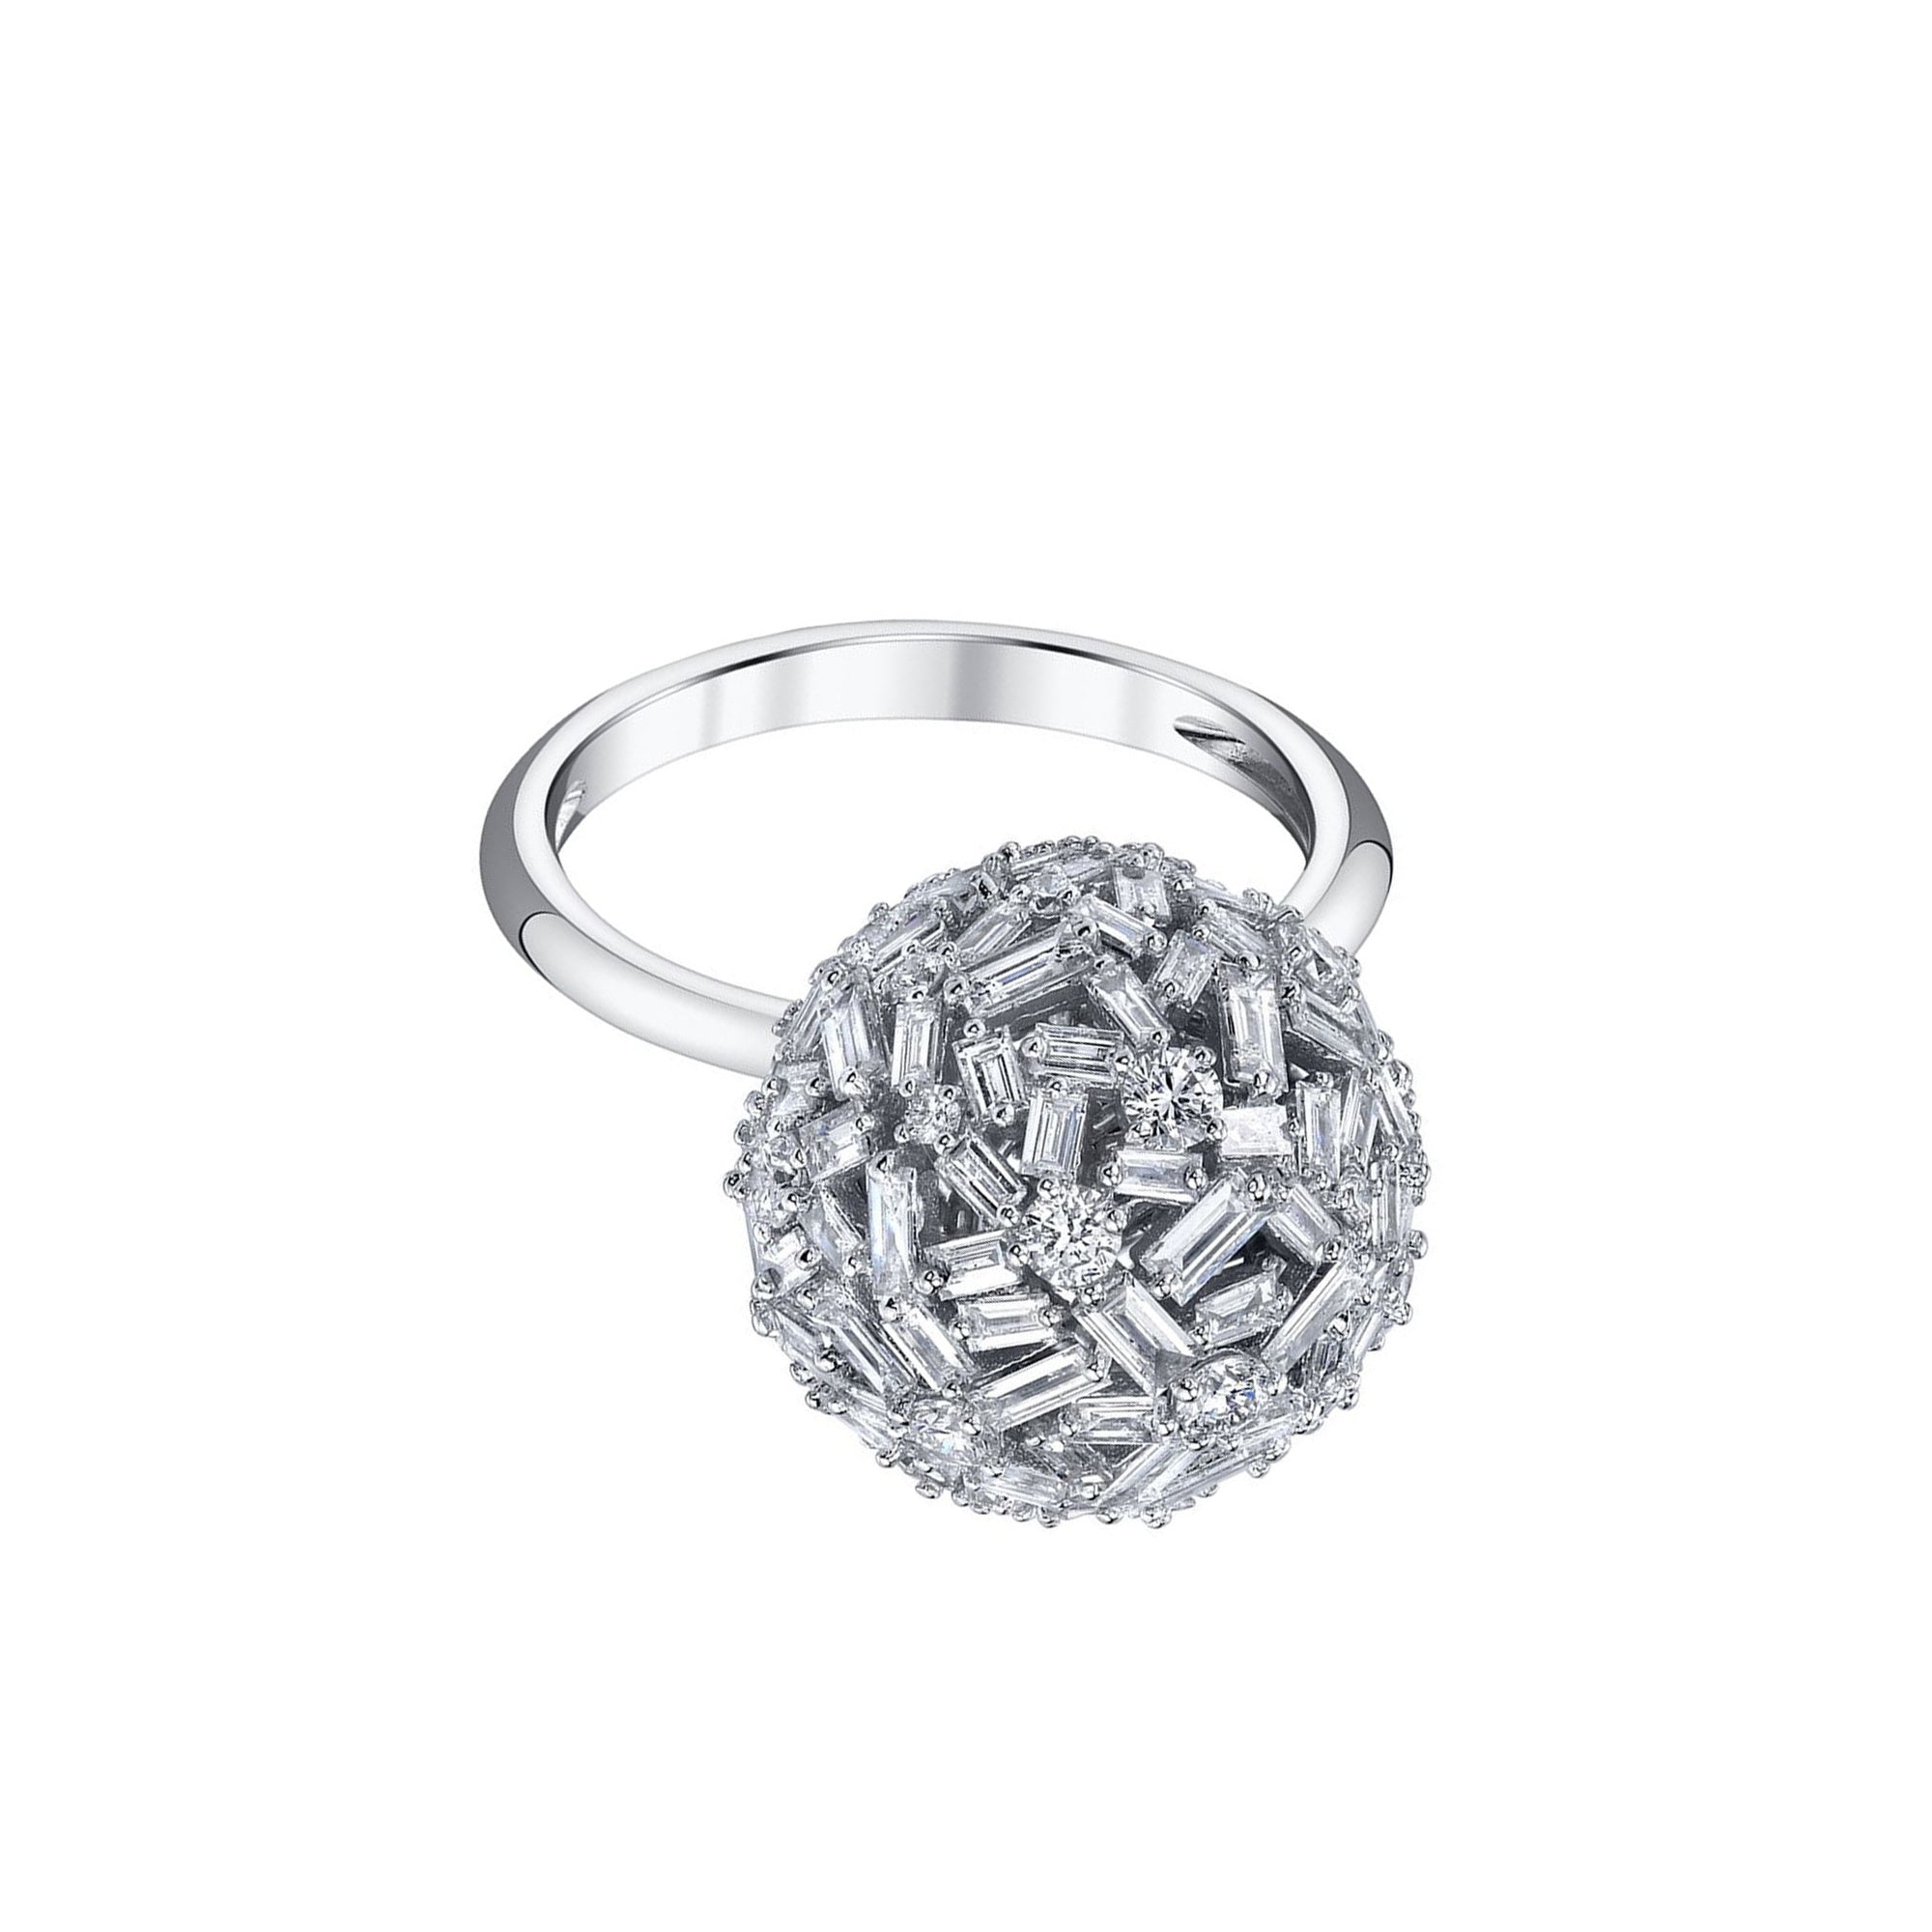 Borgioni Mixed Cut Diamond Ball Ring - White Gold - Rings - Broken English Jewelry